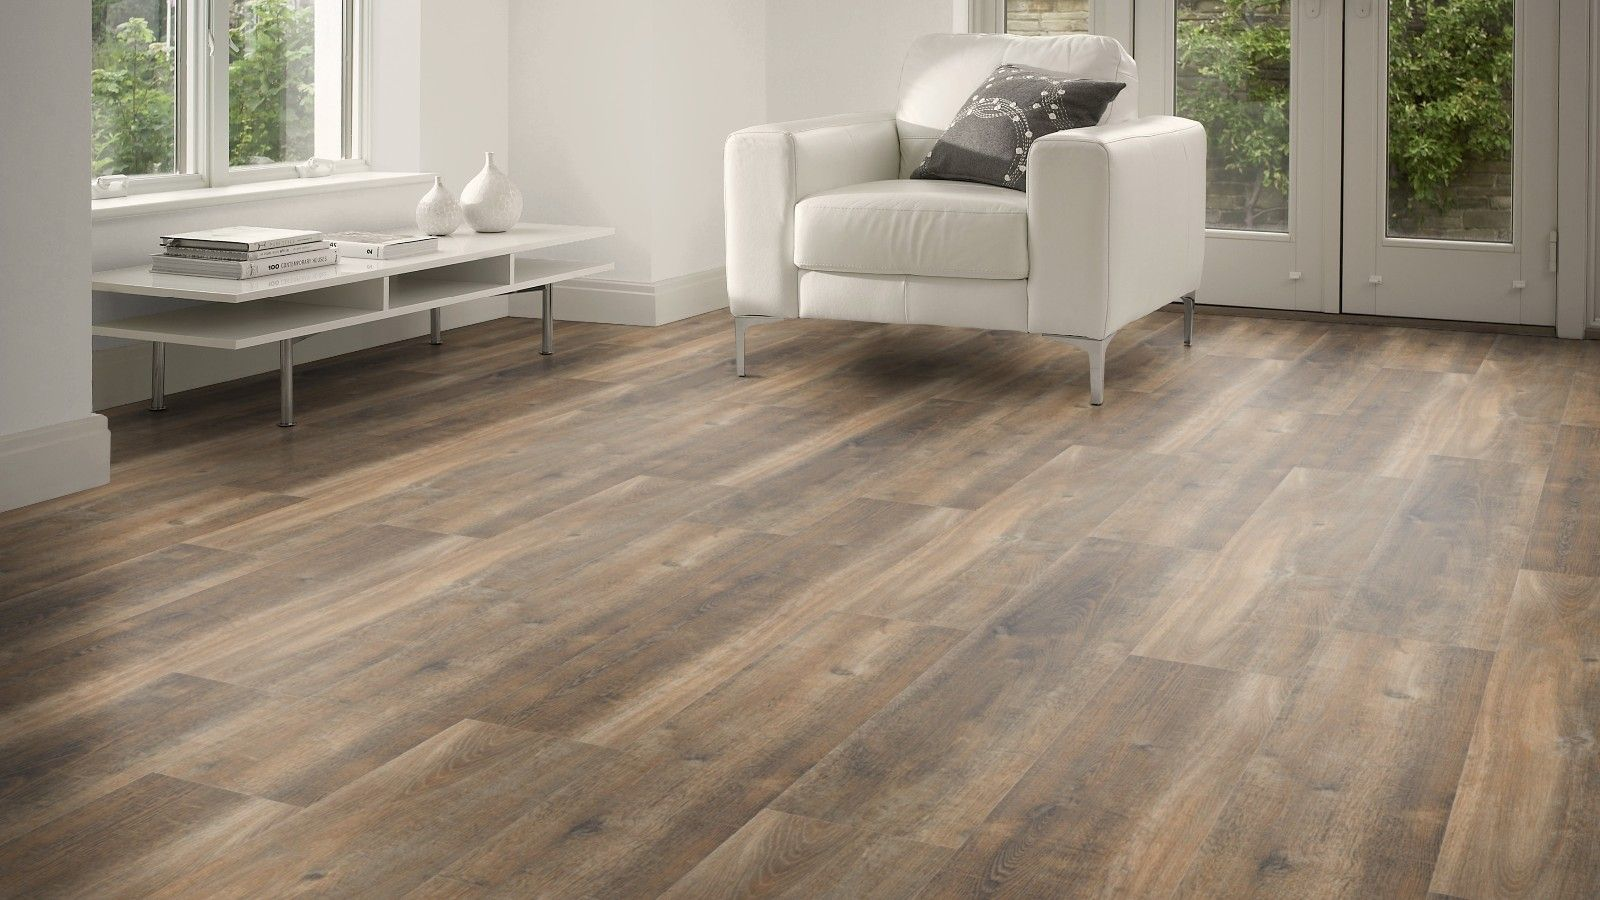 This Is The Floor Amtico Aged Oak Kitchen Flooring Amtico Flooring Flooring